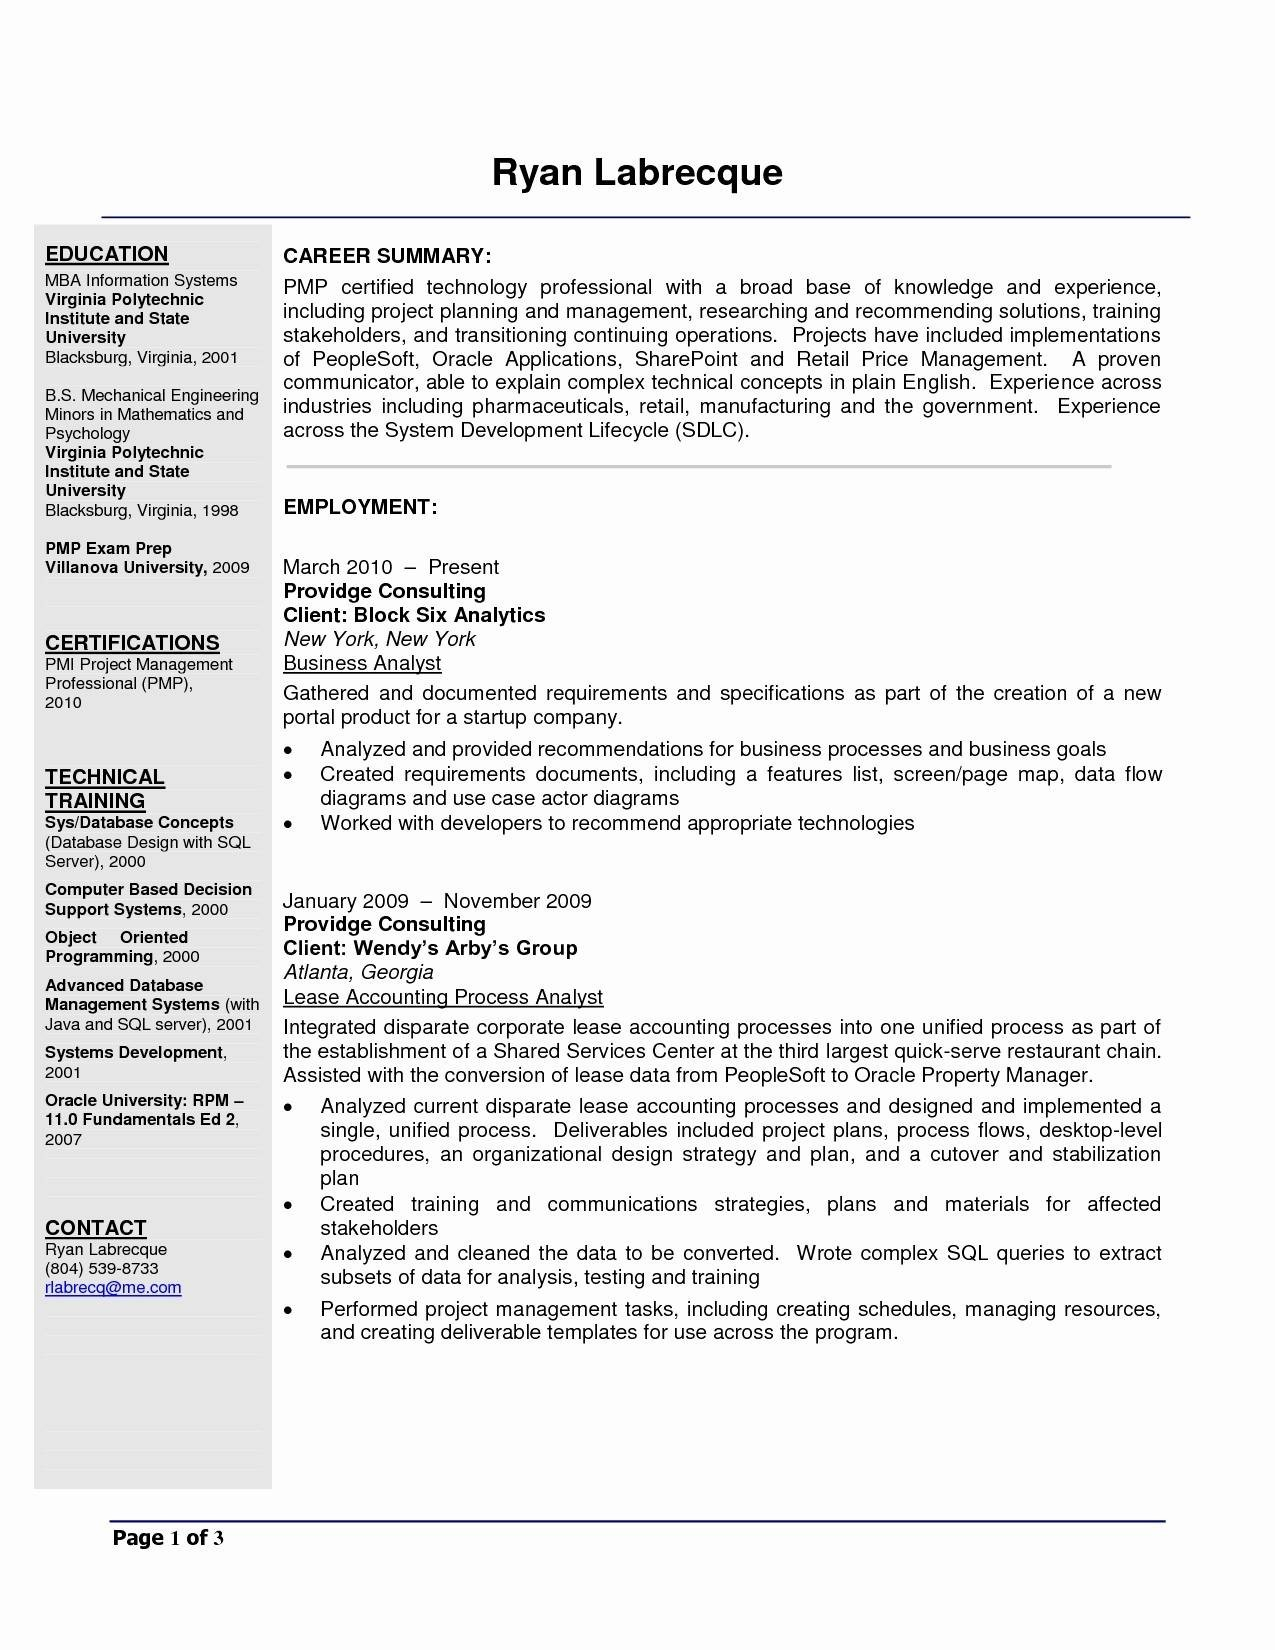 Agile Business Analyst Resume - Agile Business Analyst Resume